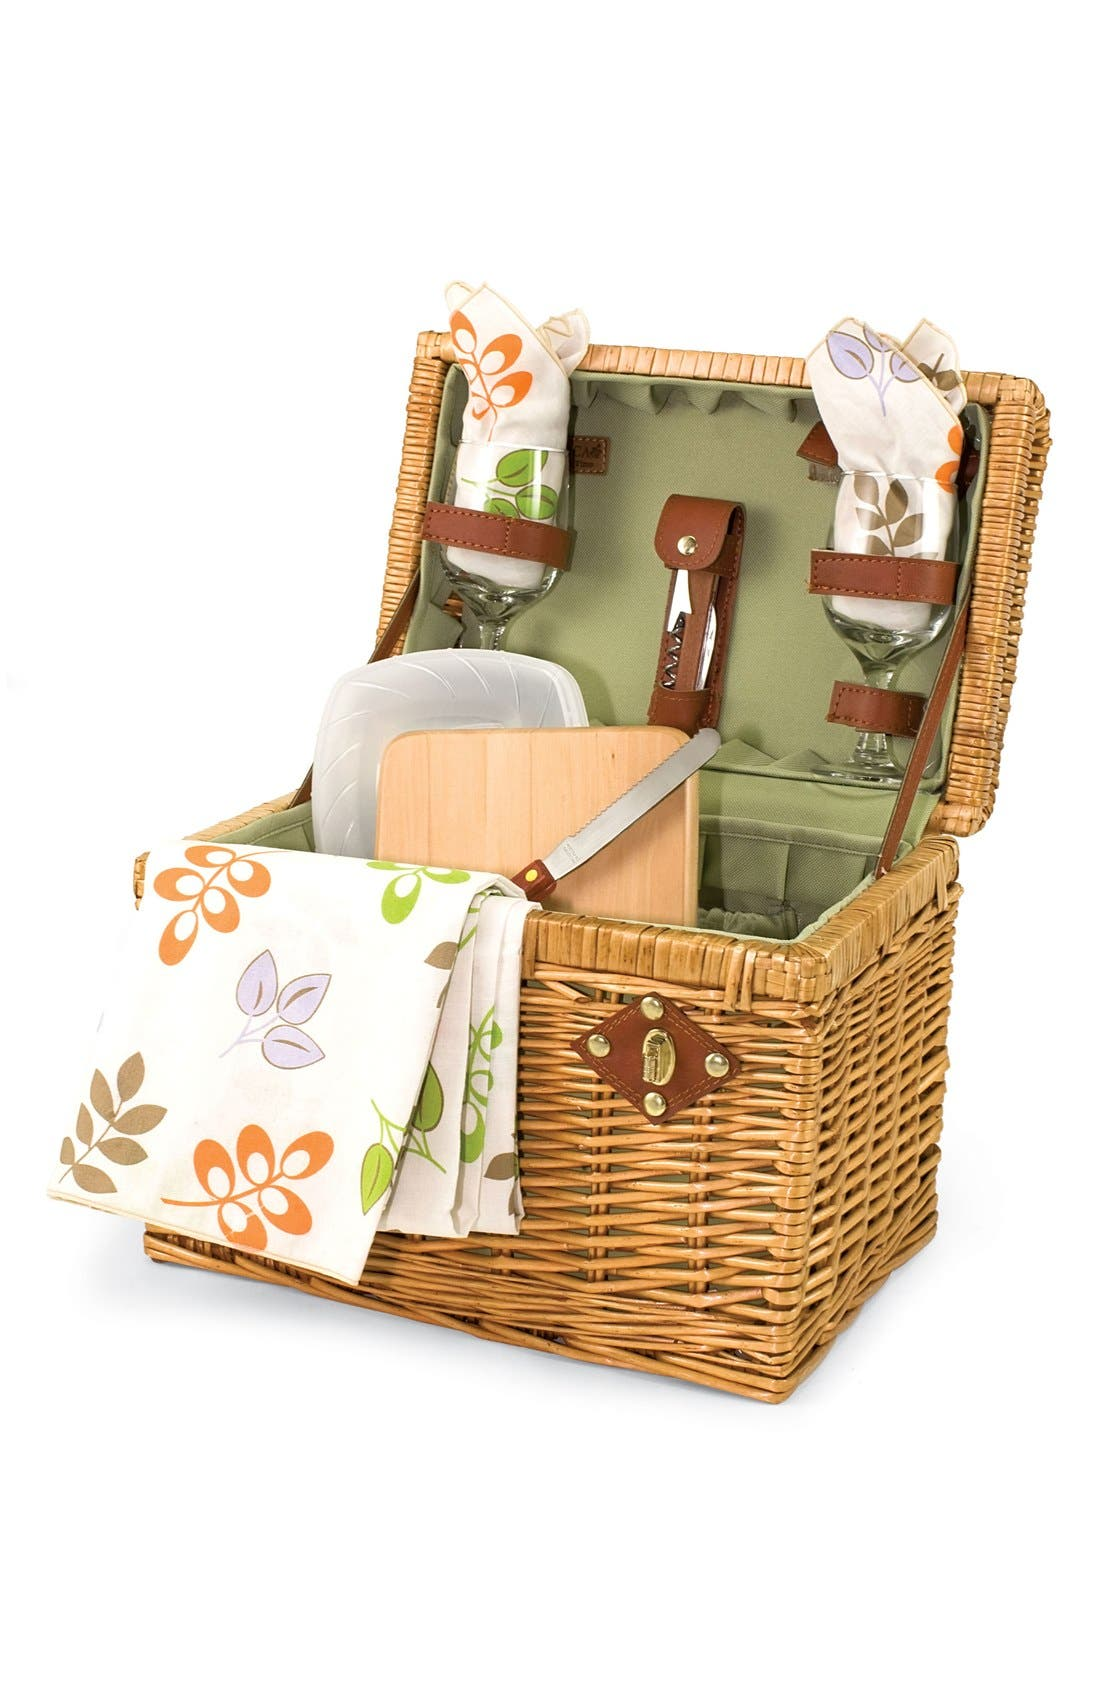 'Napa' Wicker Picnic Basket,                             Main thumbnail 1, color,                             200